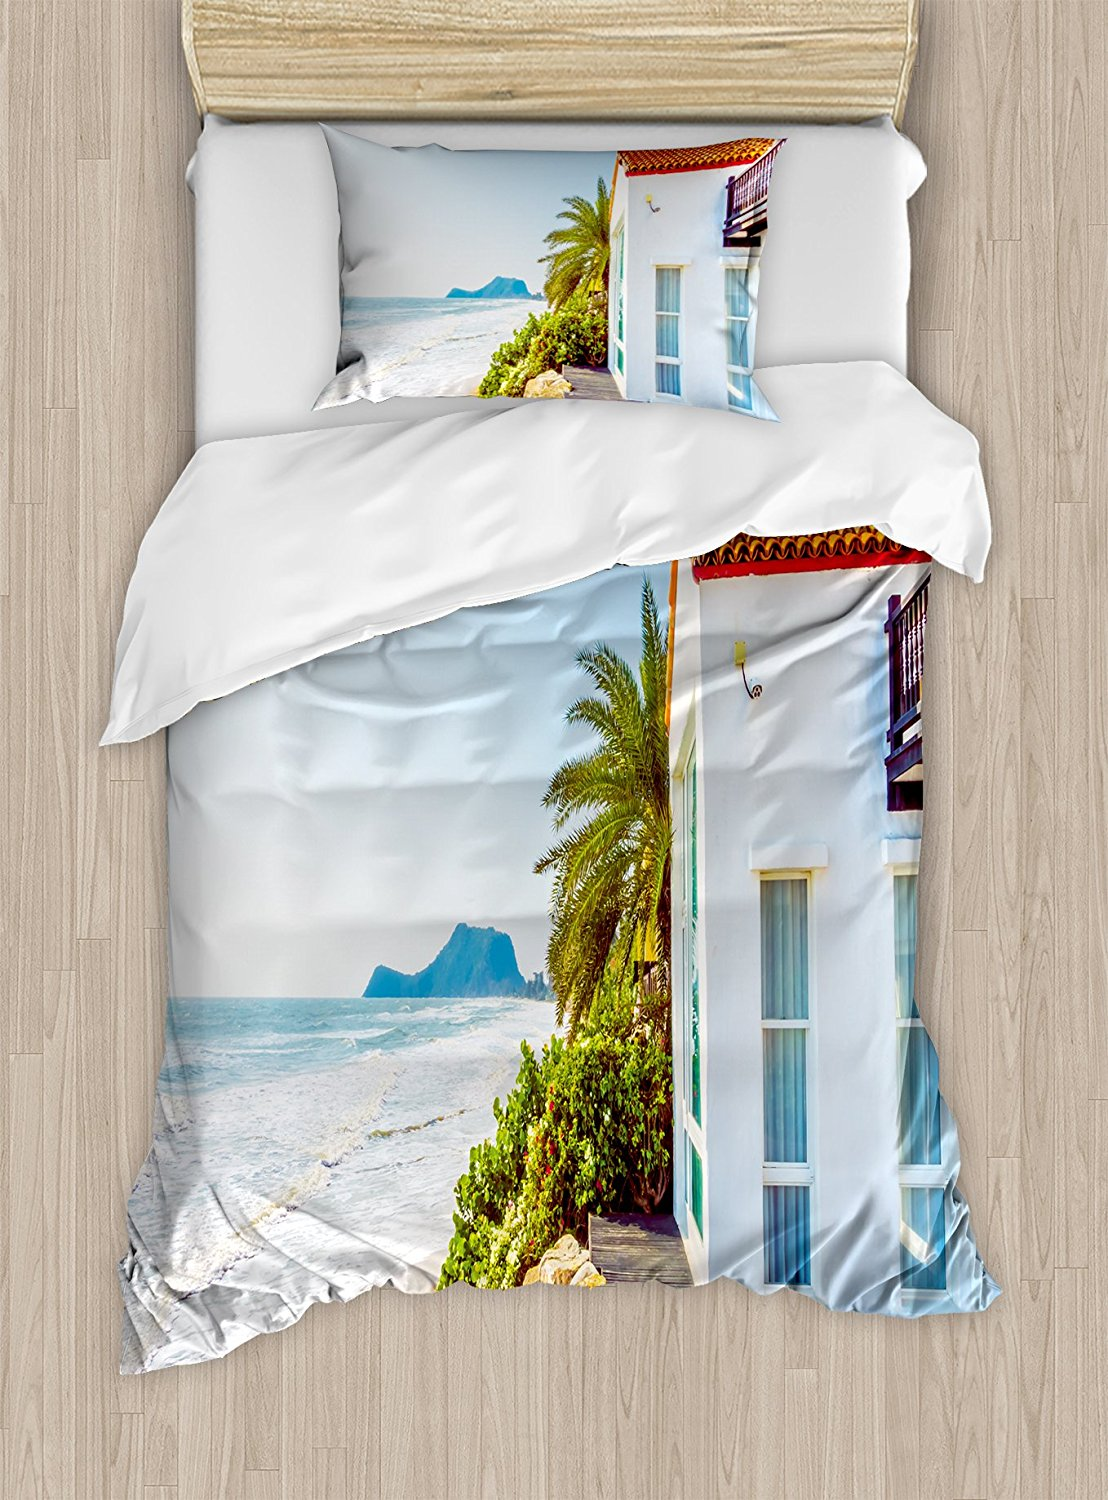 Us 115 23 42 Off Ocean Duvet Cover Set Coastal Charm Themed Beach House Porch View Moroccan Style Architecture Island Artsy Decor Bedding Set In